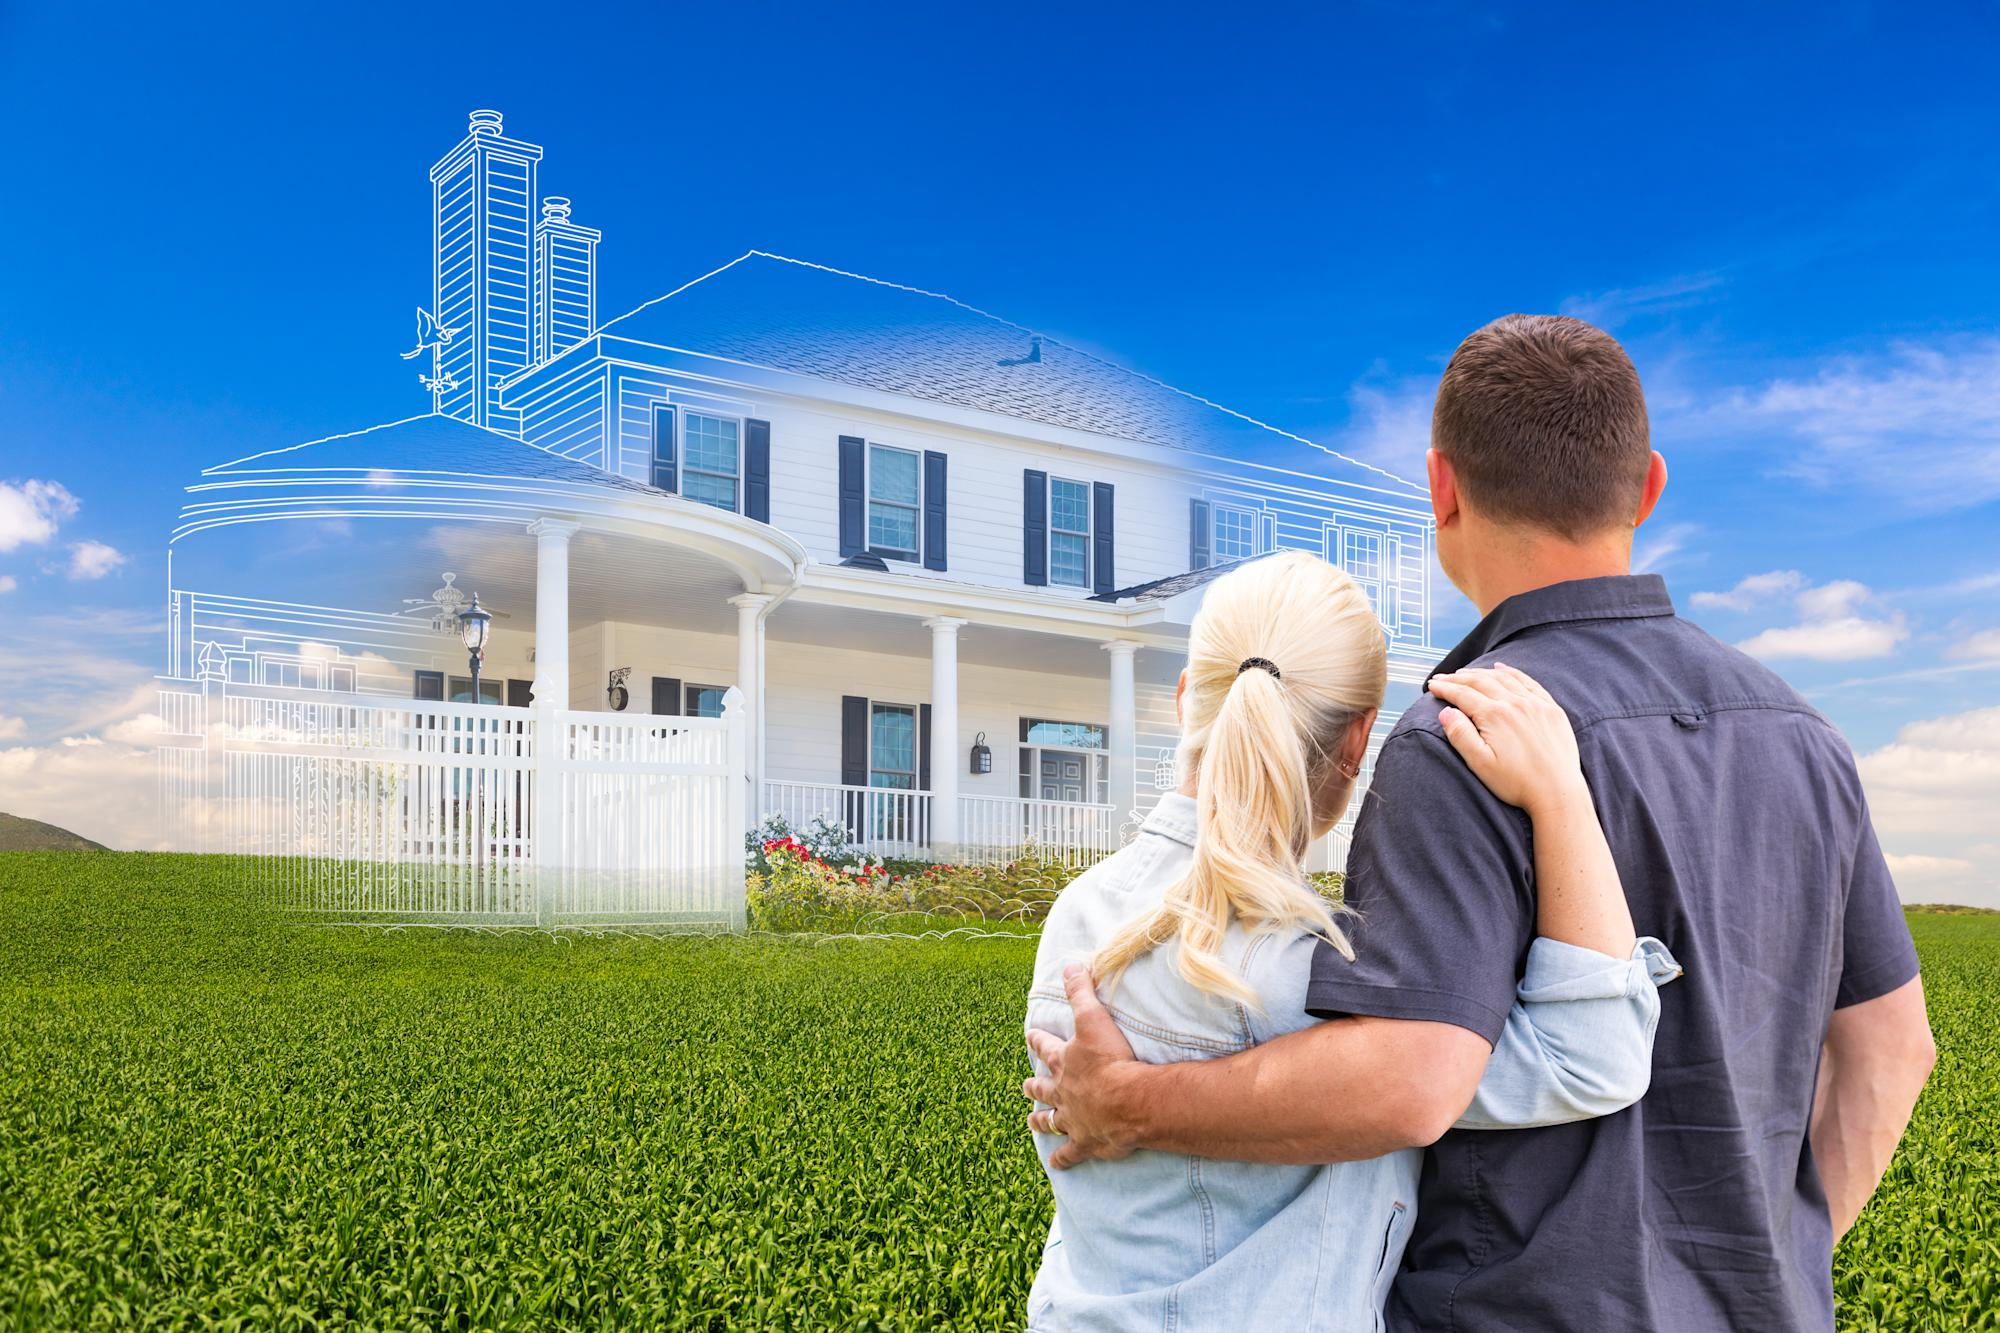 This startup allows you to custom build your home virtually